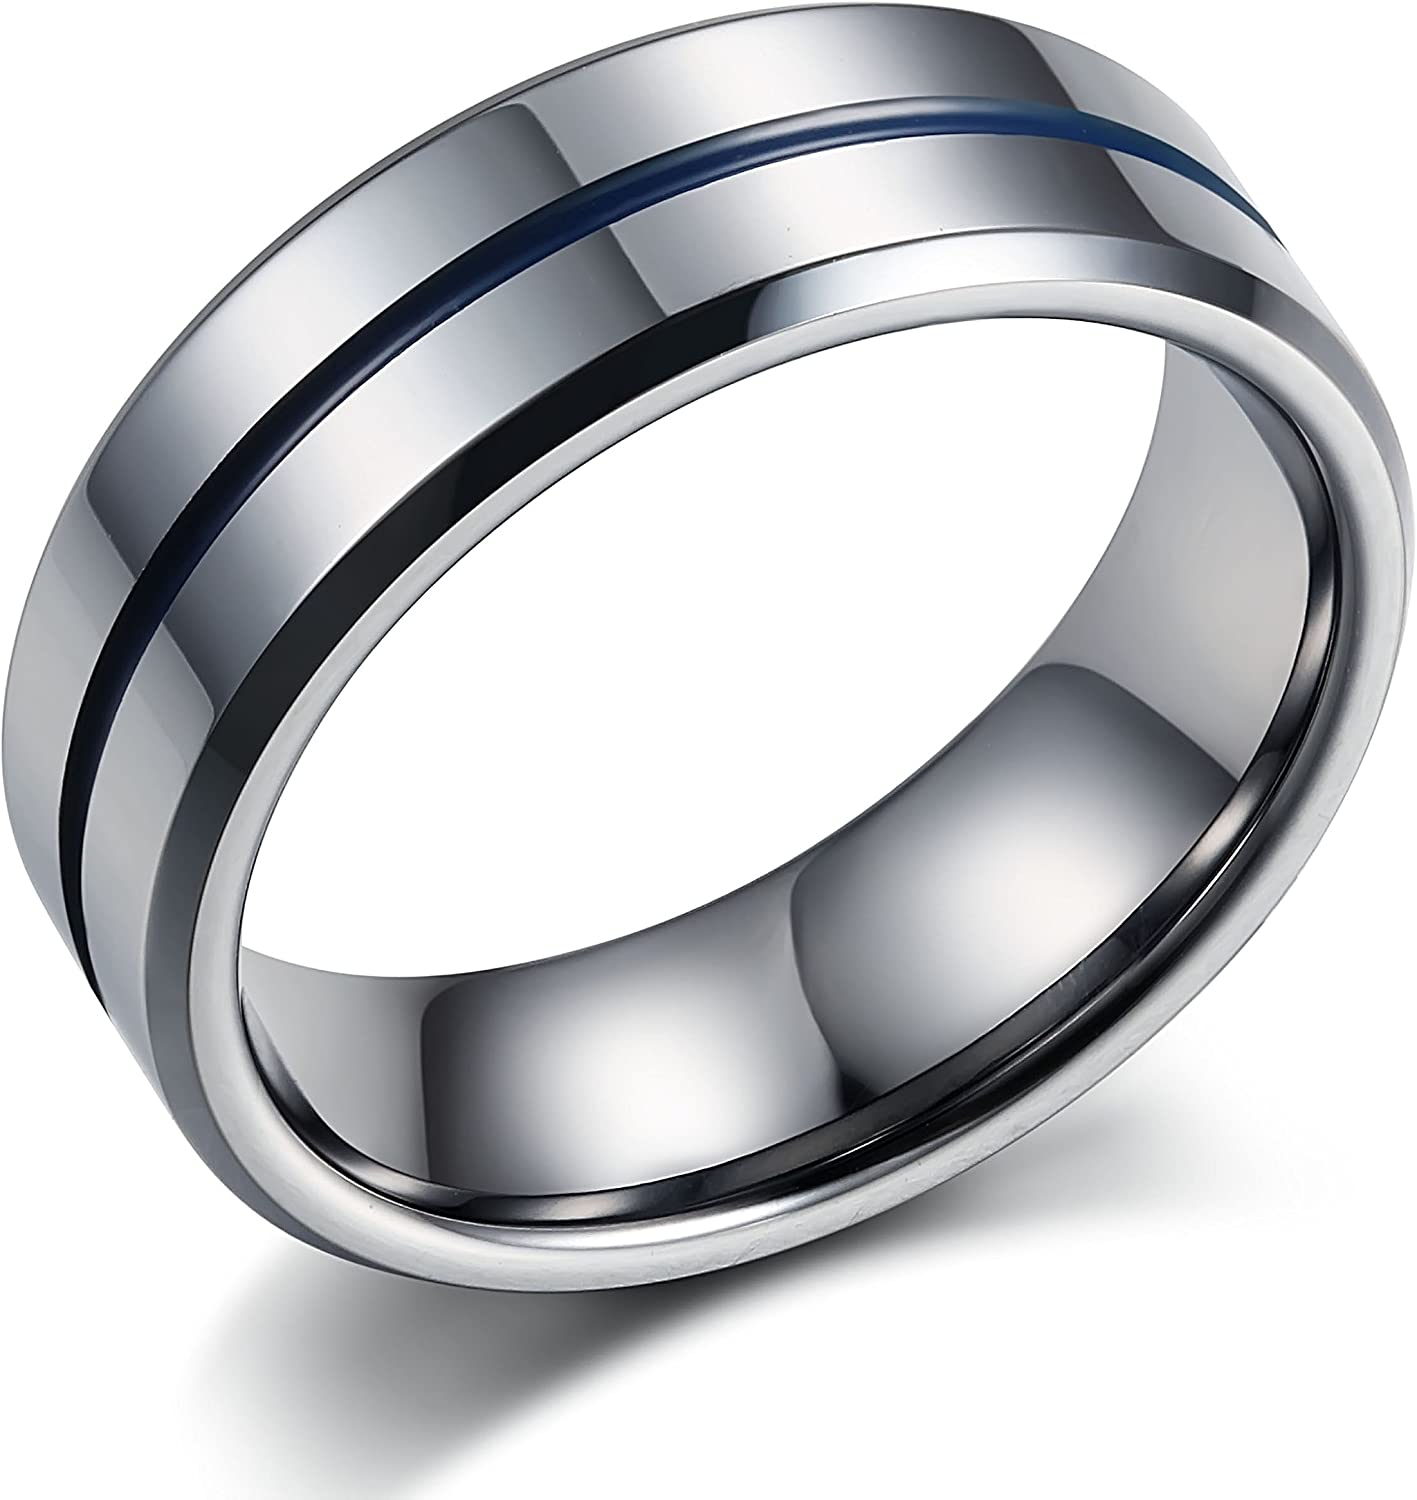 Tungary Jewelry 8mm Mens Tungsten Carbide Wedding Band Engagement Groove Blue Line High Polish Size 7-14